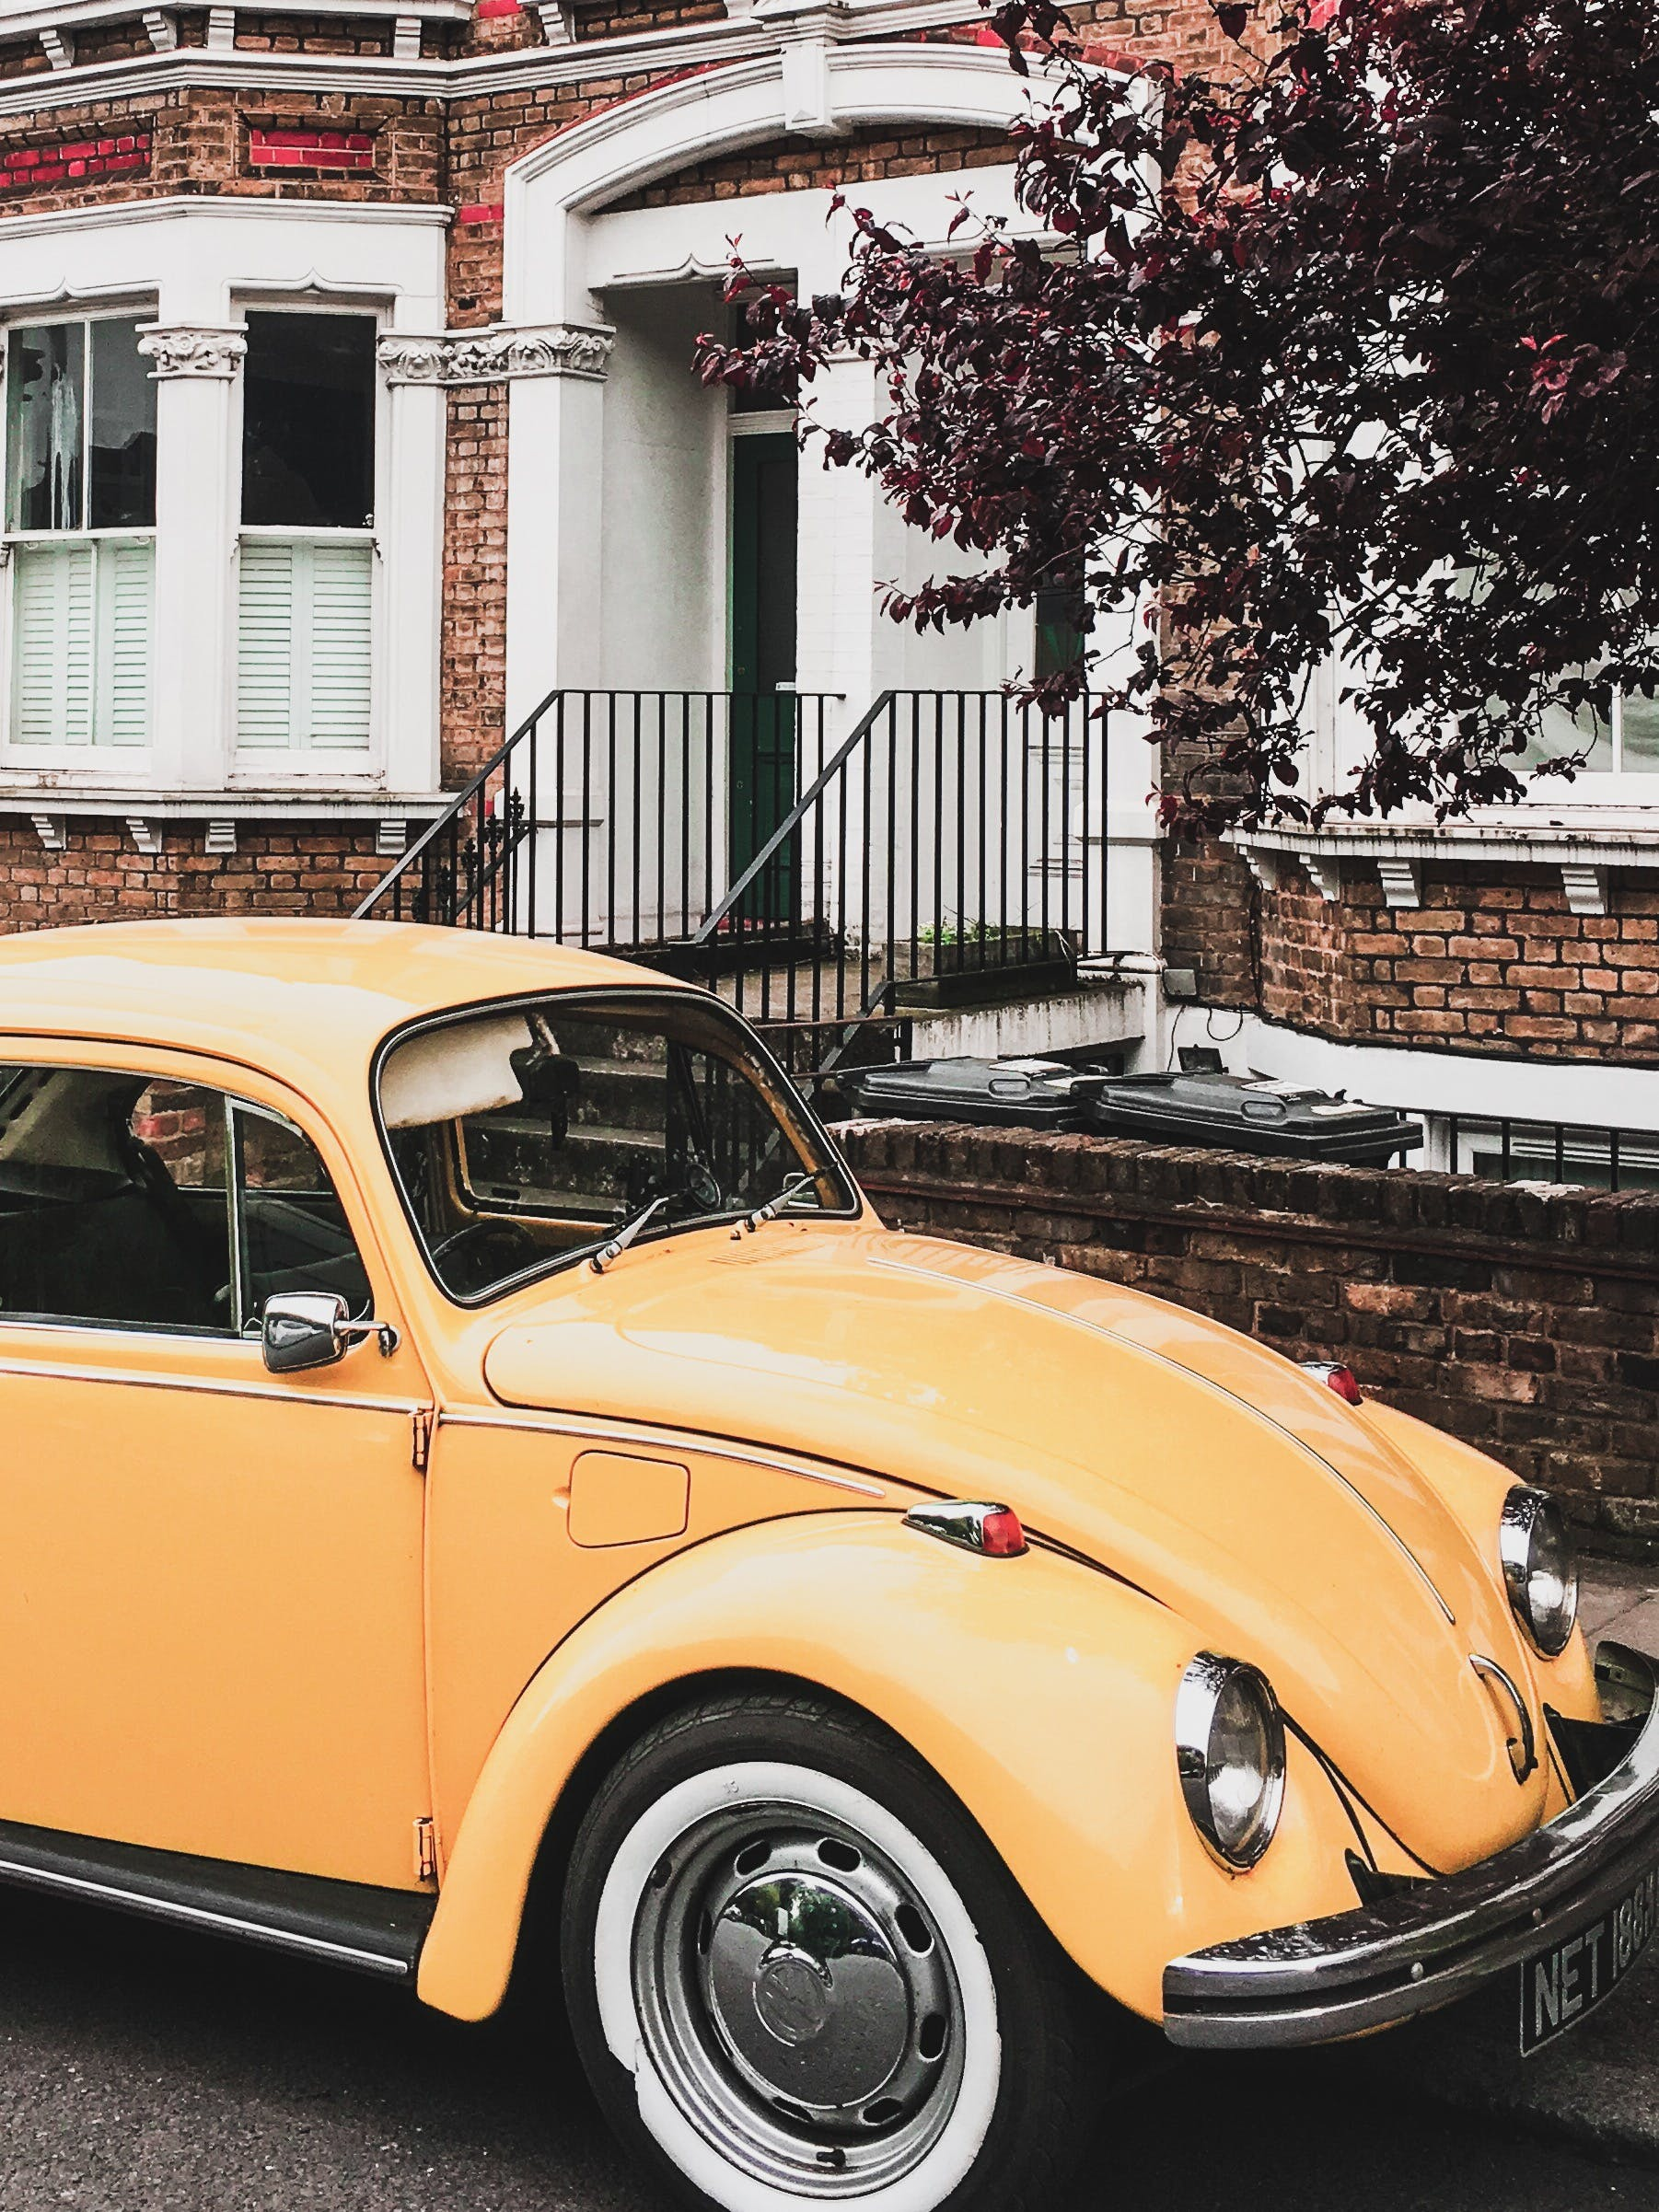 Photo of Yellow VW Beetle Parked by the Curb Next to a House